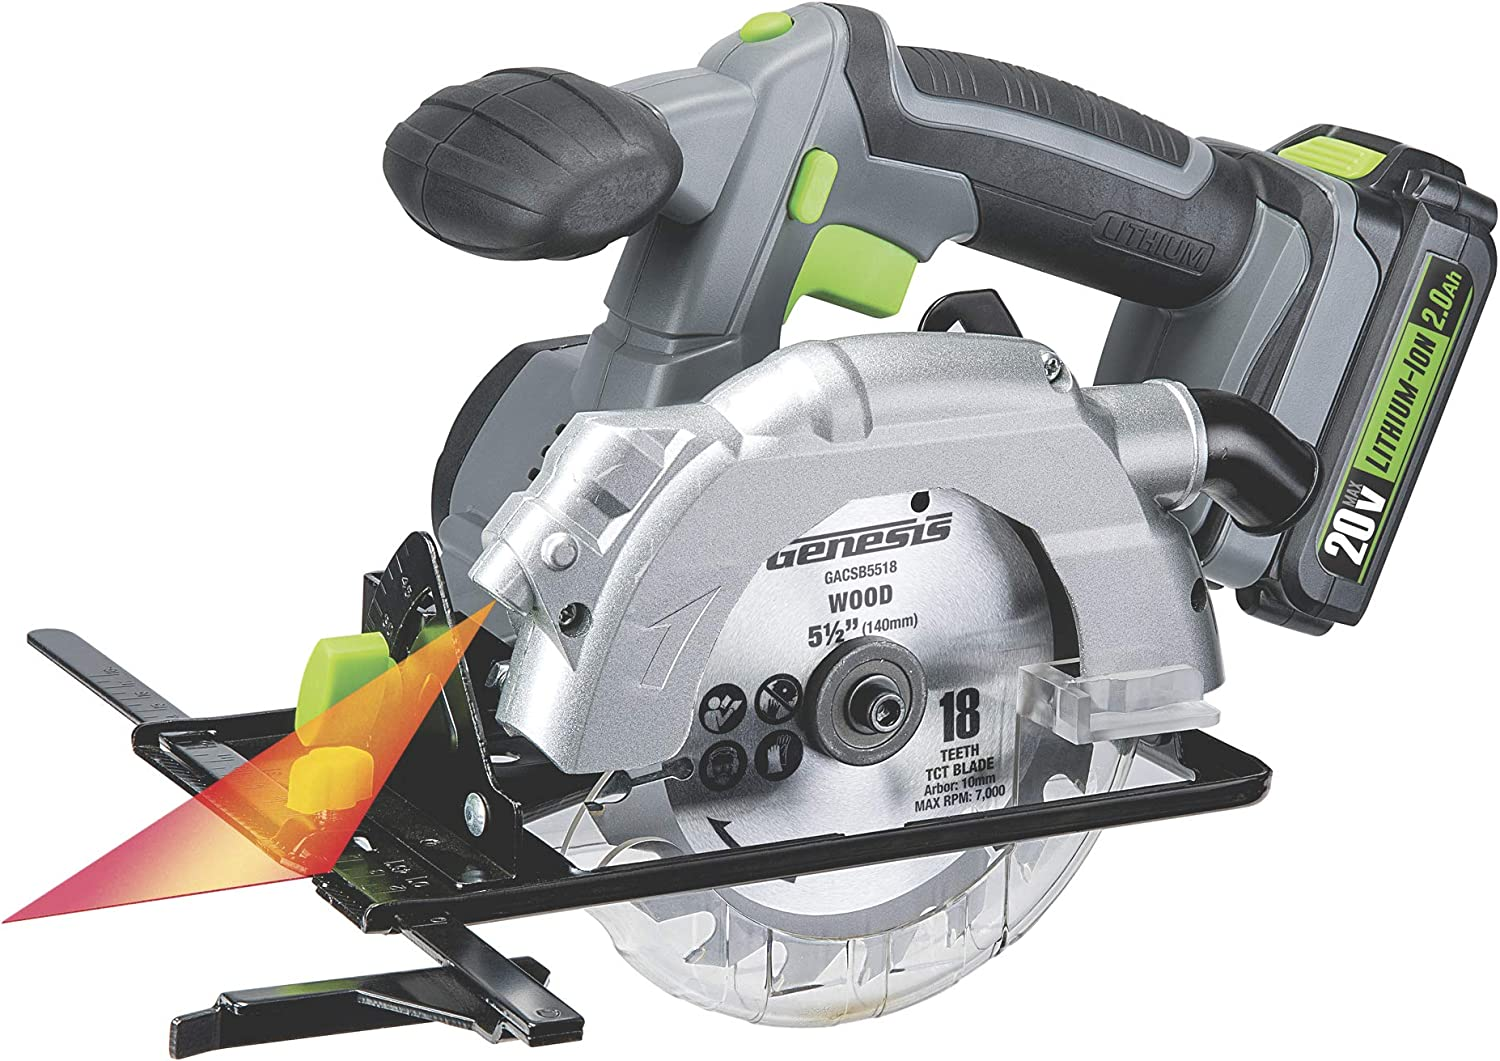 "Genesis GLCS2055A 20V Cordless Lithium-Ion Battery-Powered 5 1/2"" Circular Saw with Built-In Laser Guide, Electric Brake, 18T Carbide-Tipped Blade, Rip Guide, Battery, Charger, and Blade Wrench"